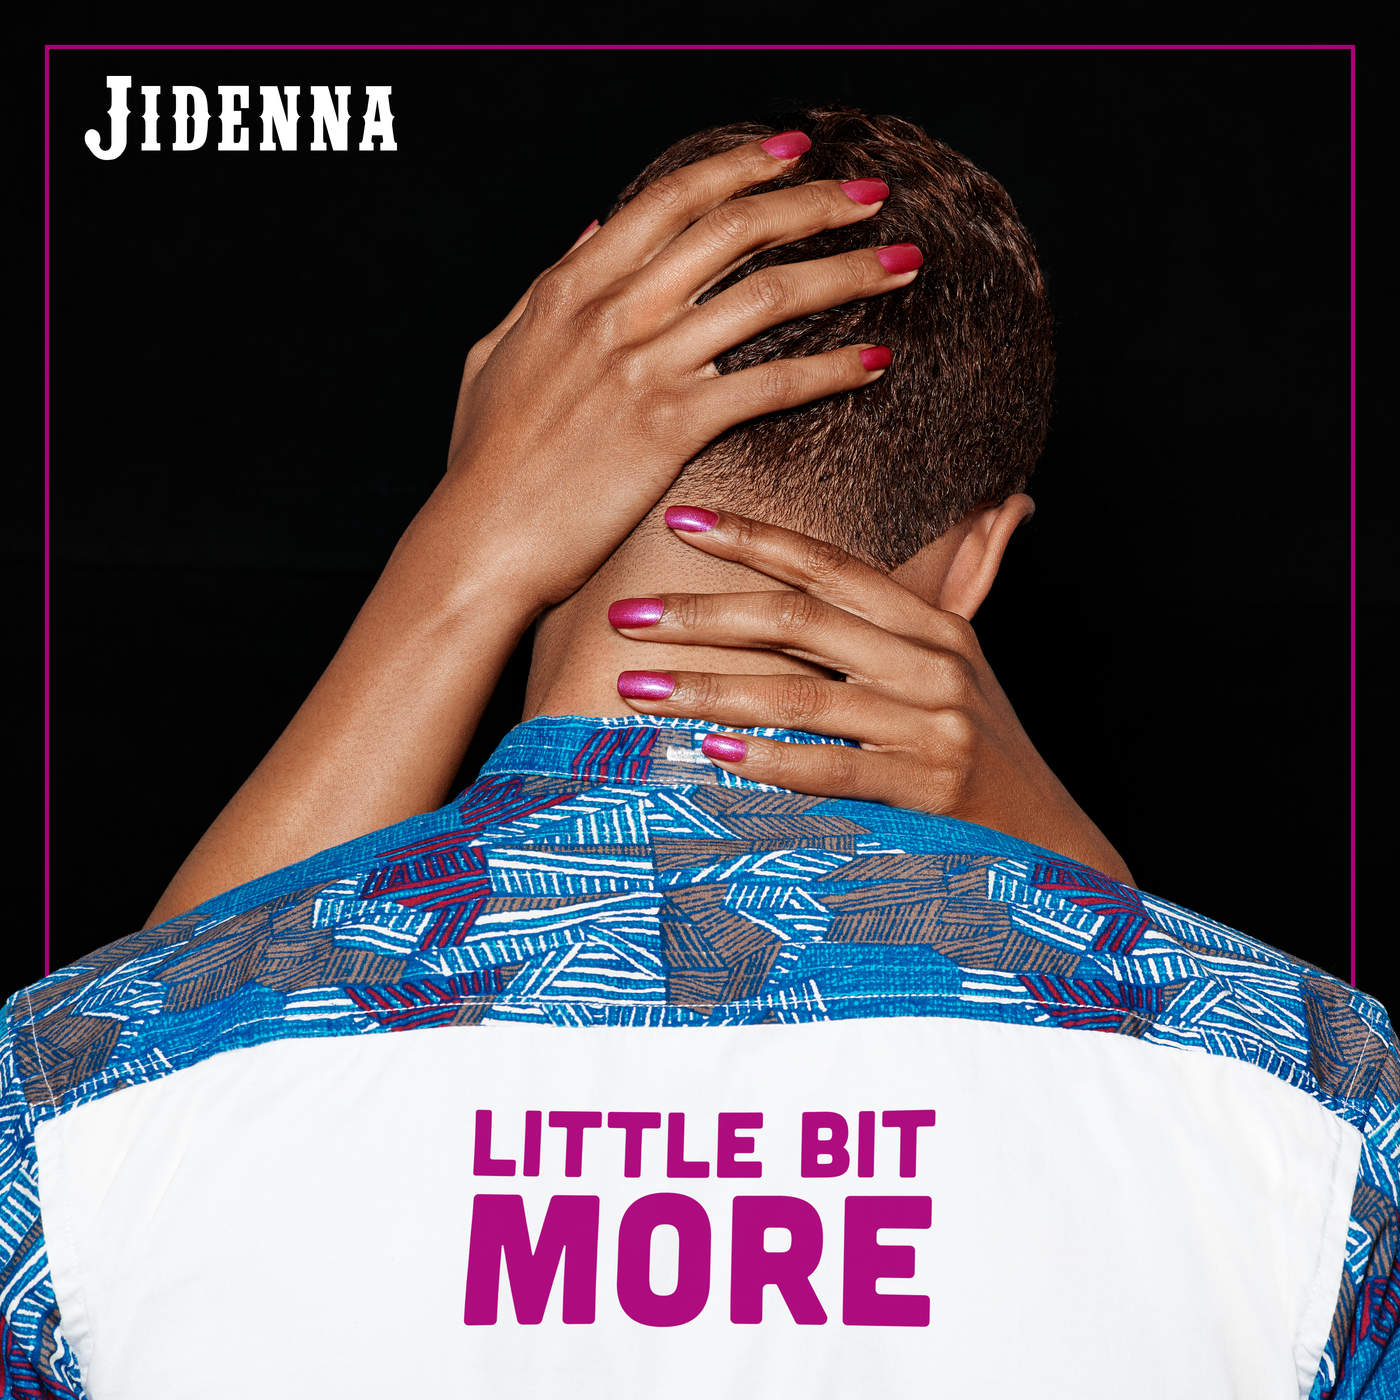 Jidenna Little Bit More